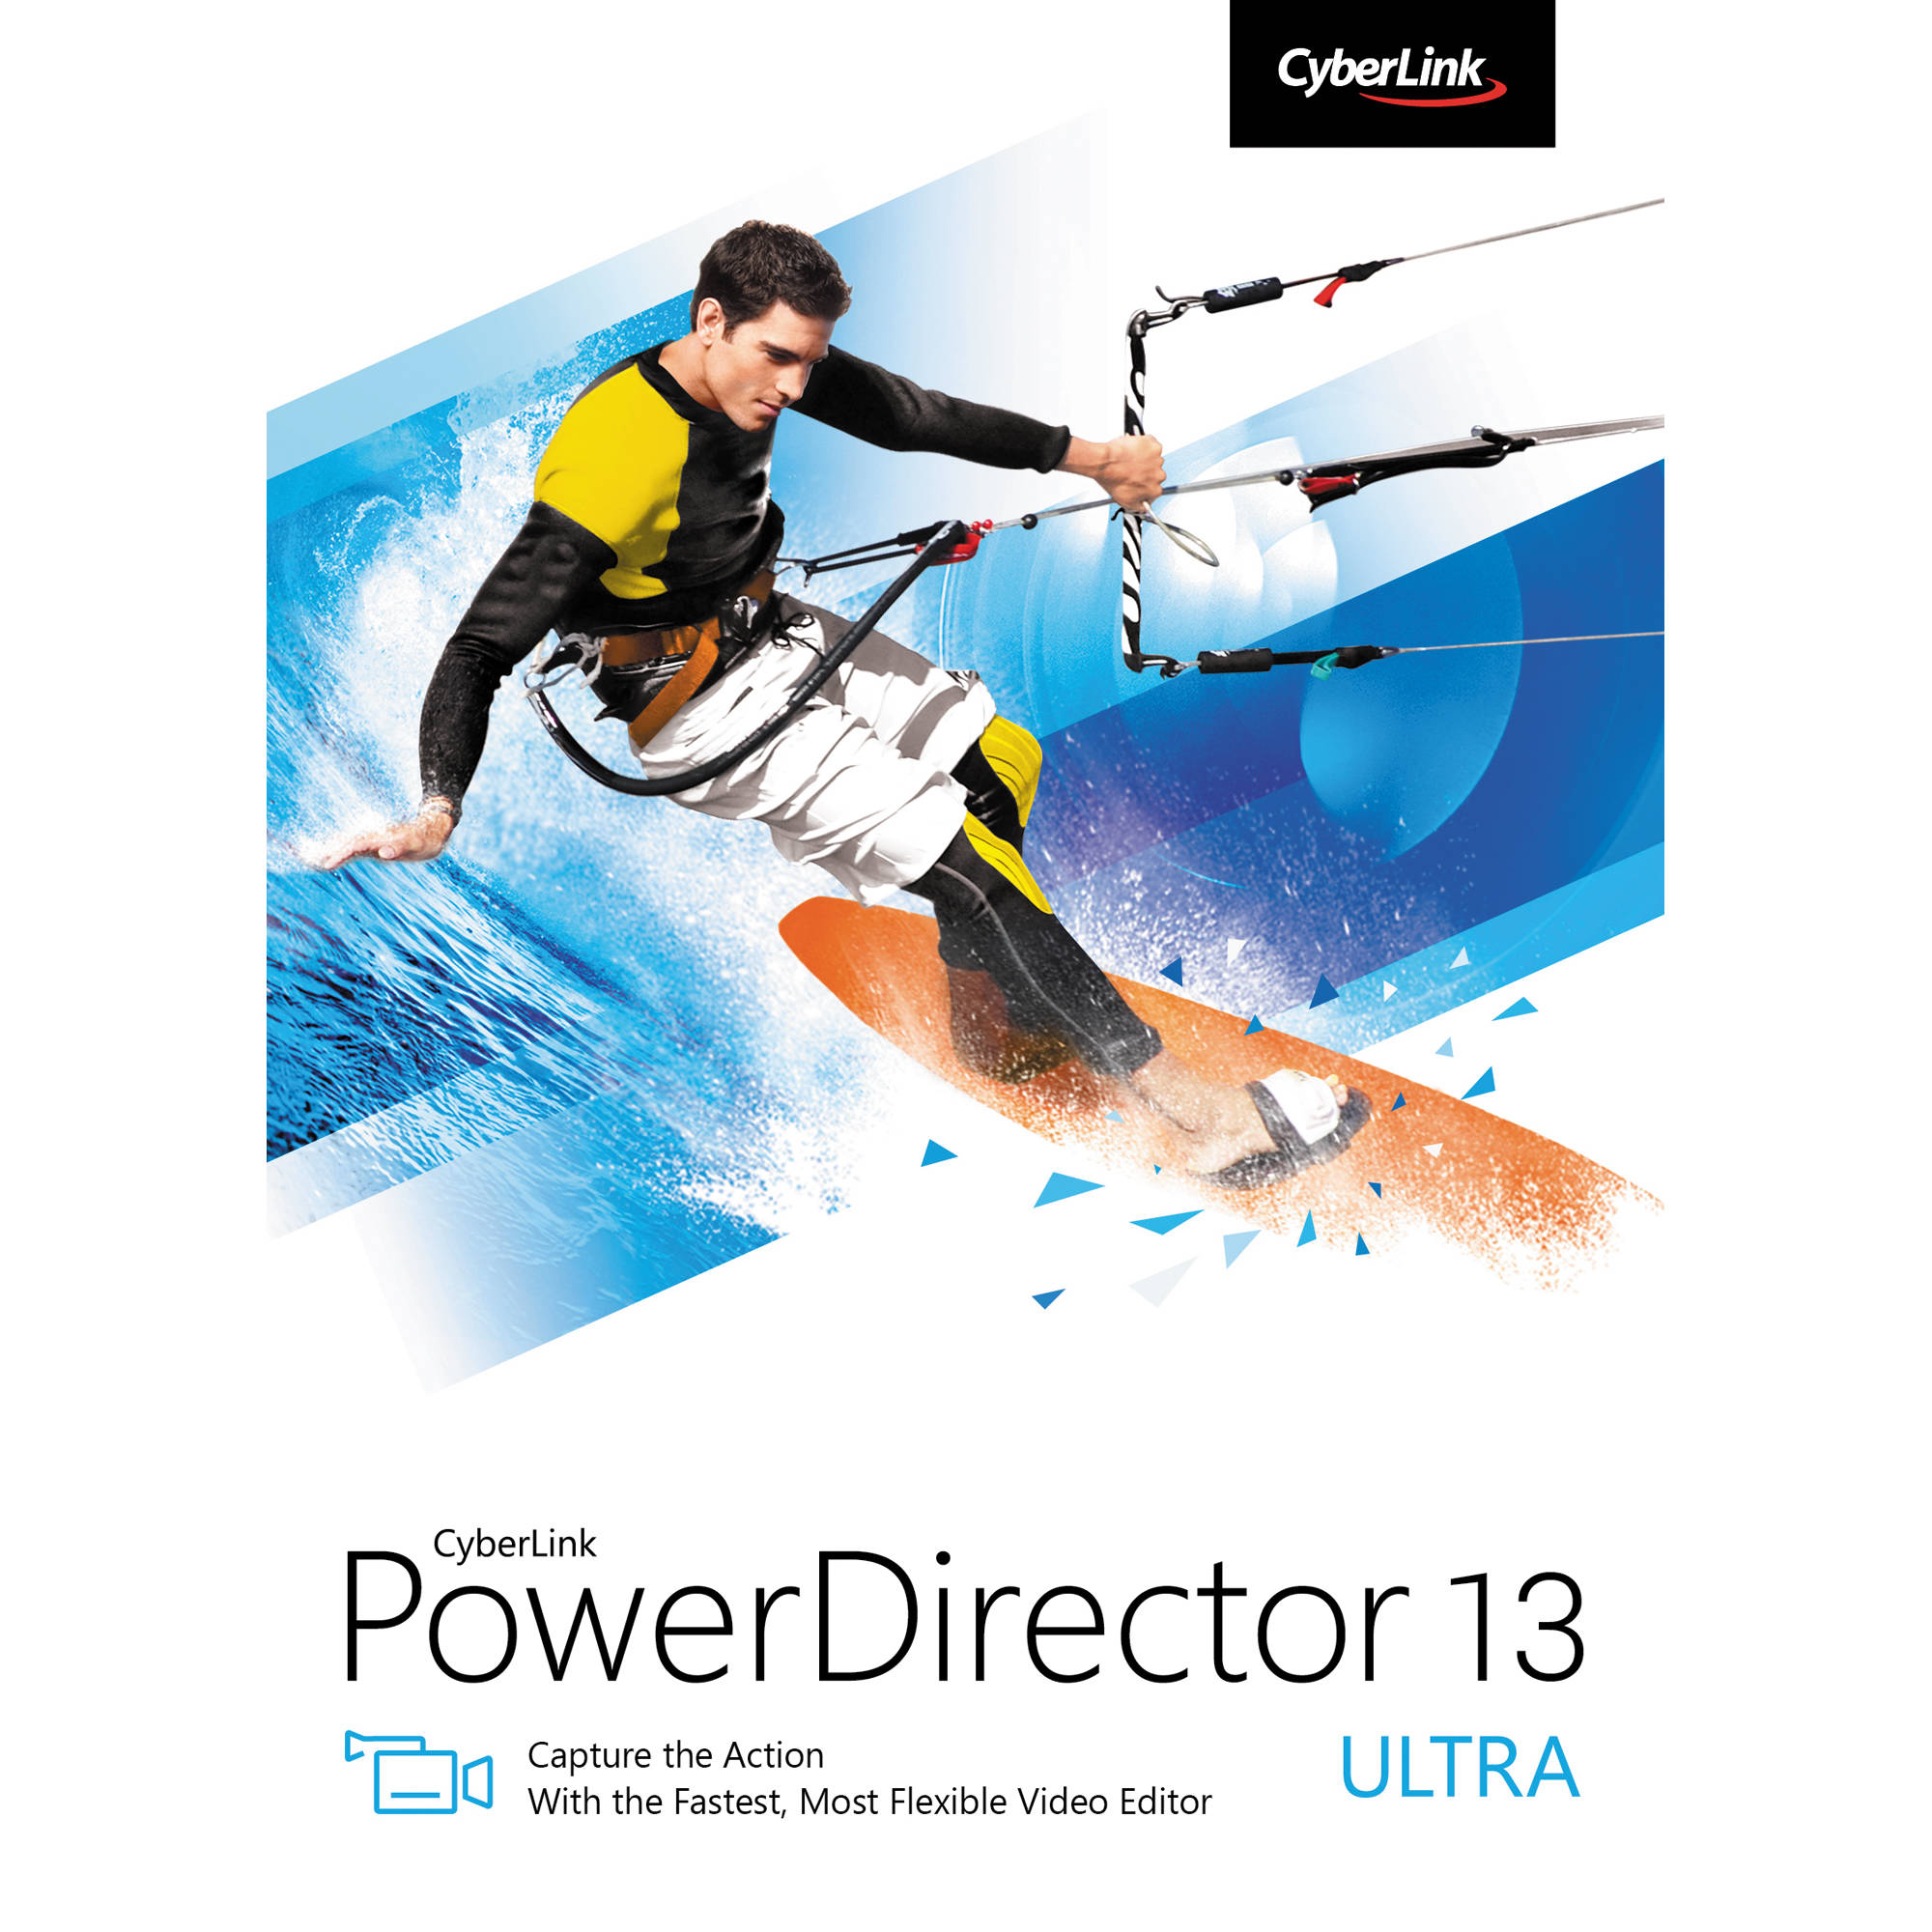 Powerdirector 13 ultra coupon code